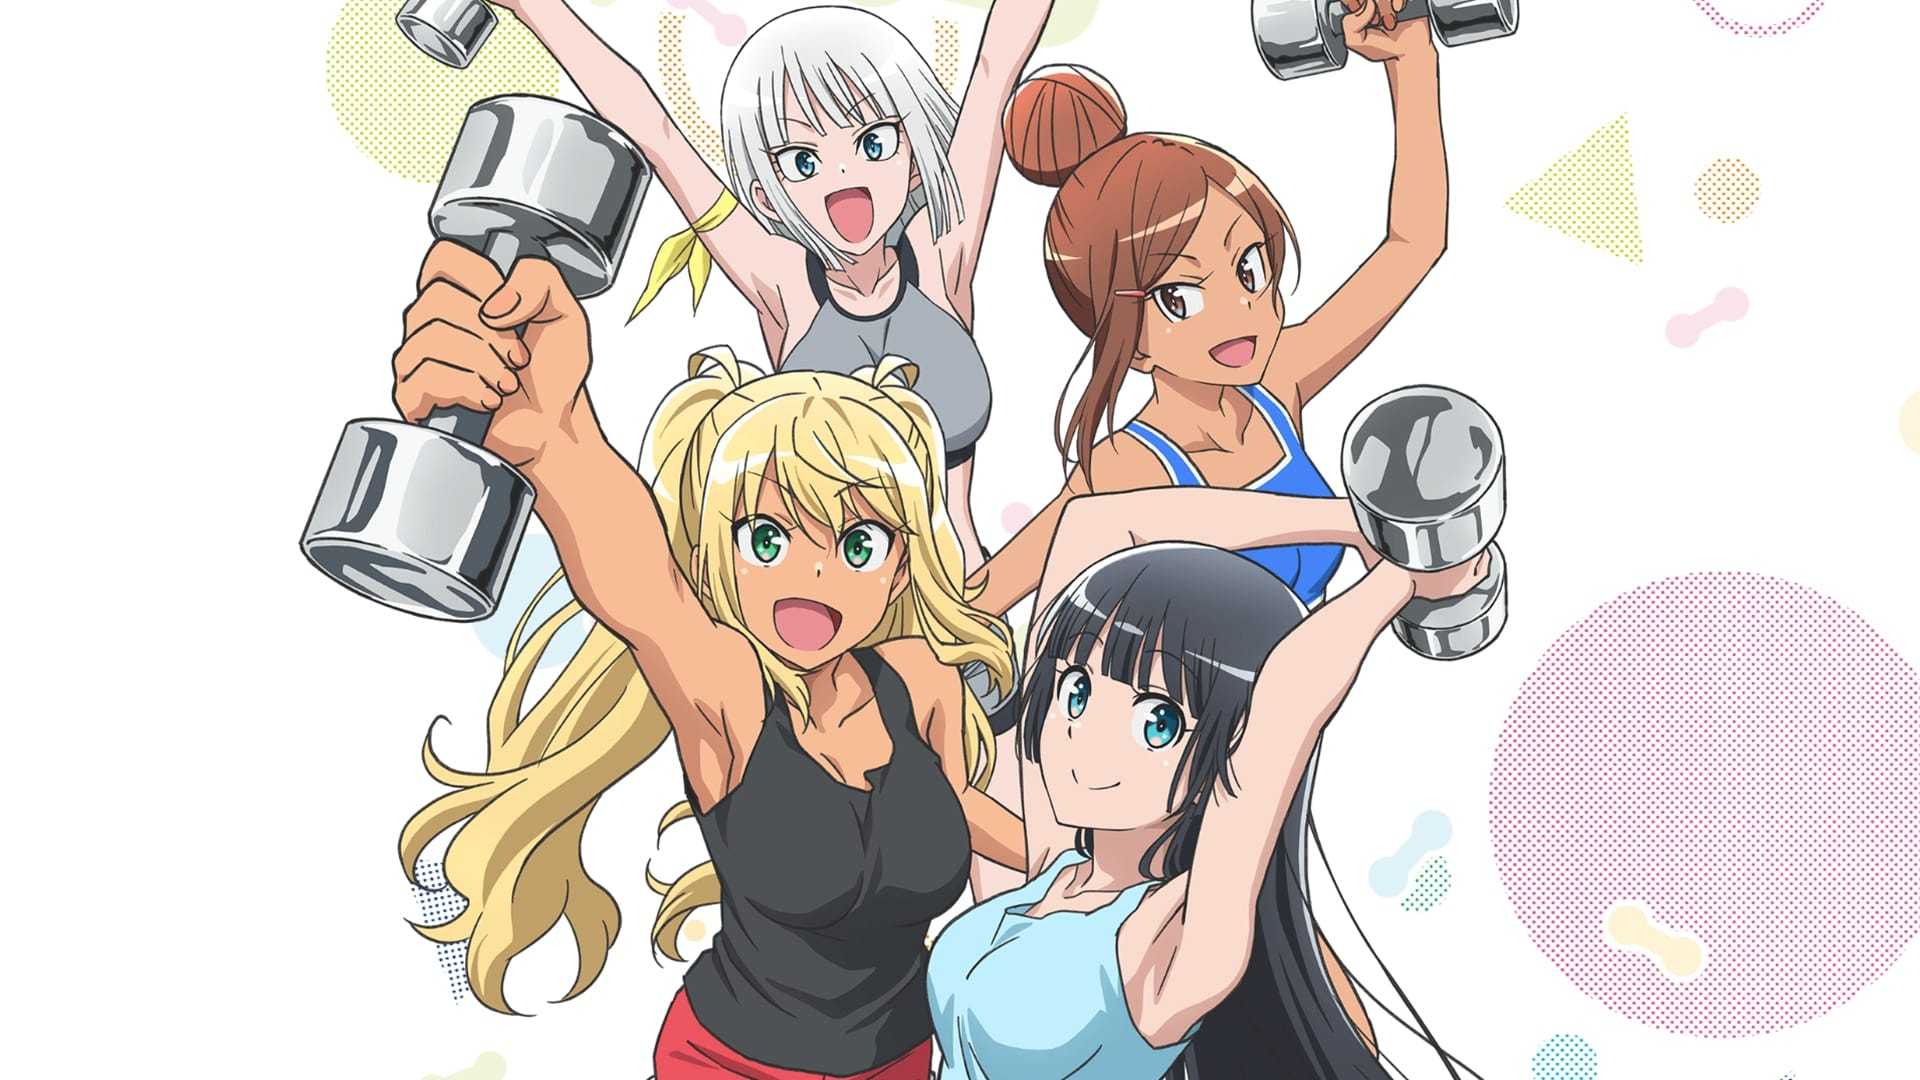 Dumbbell Nan Kilo Moteru? - Temporada 1